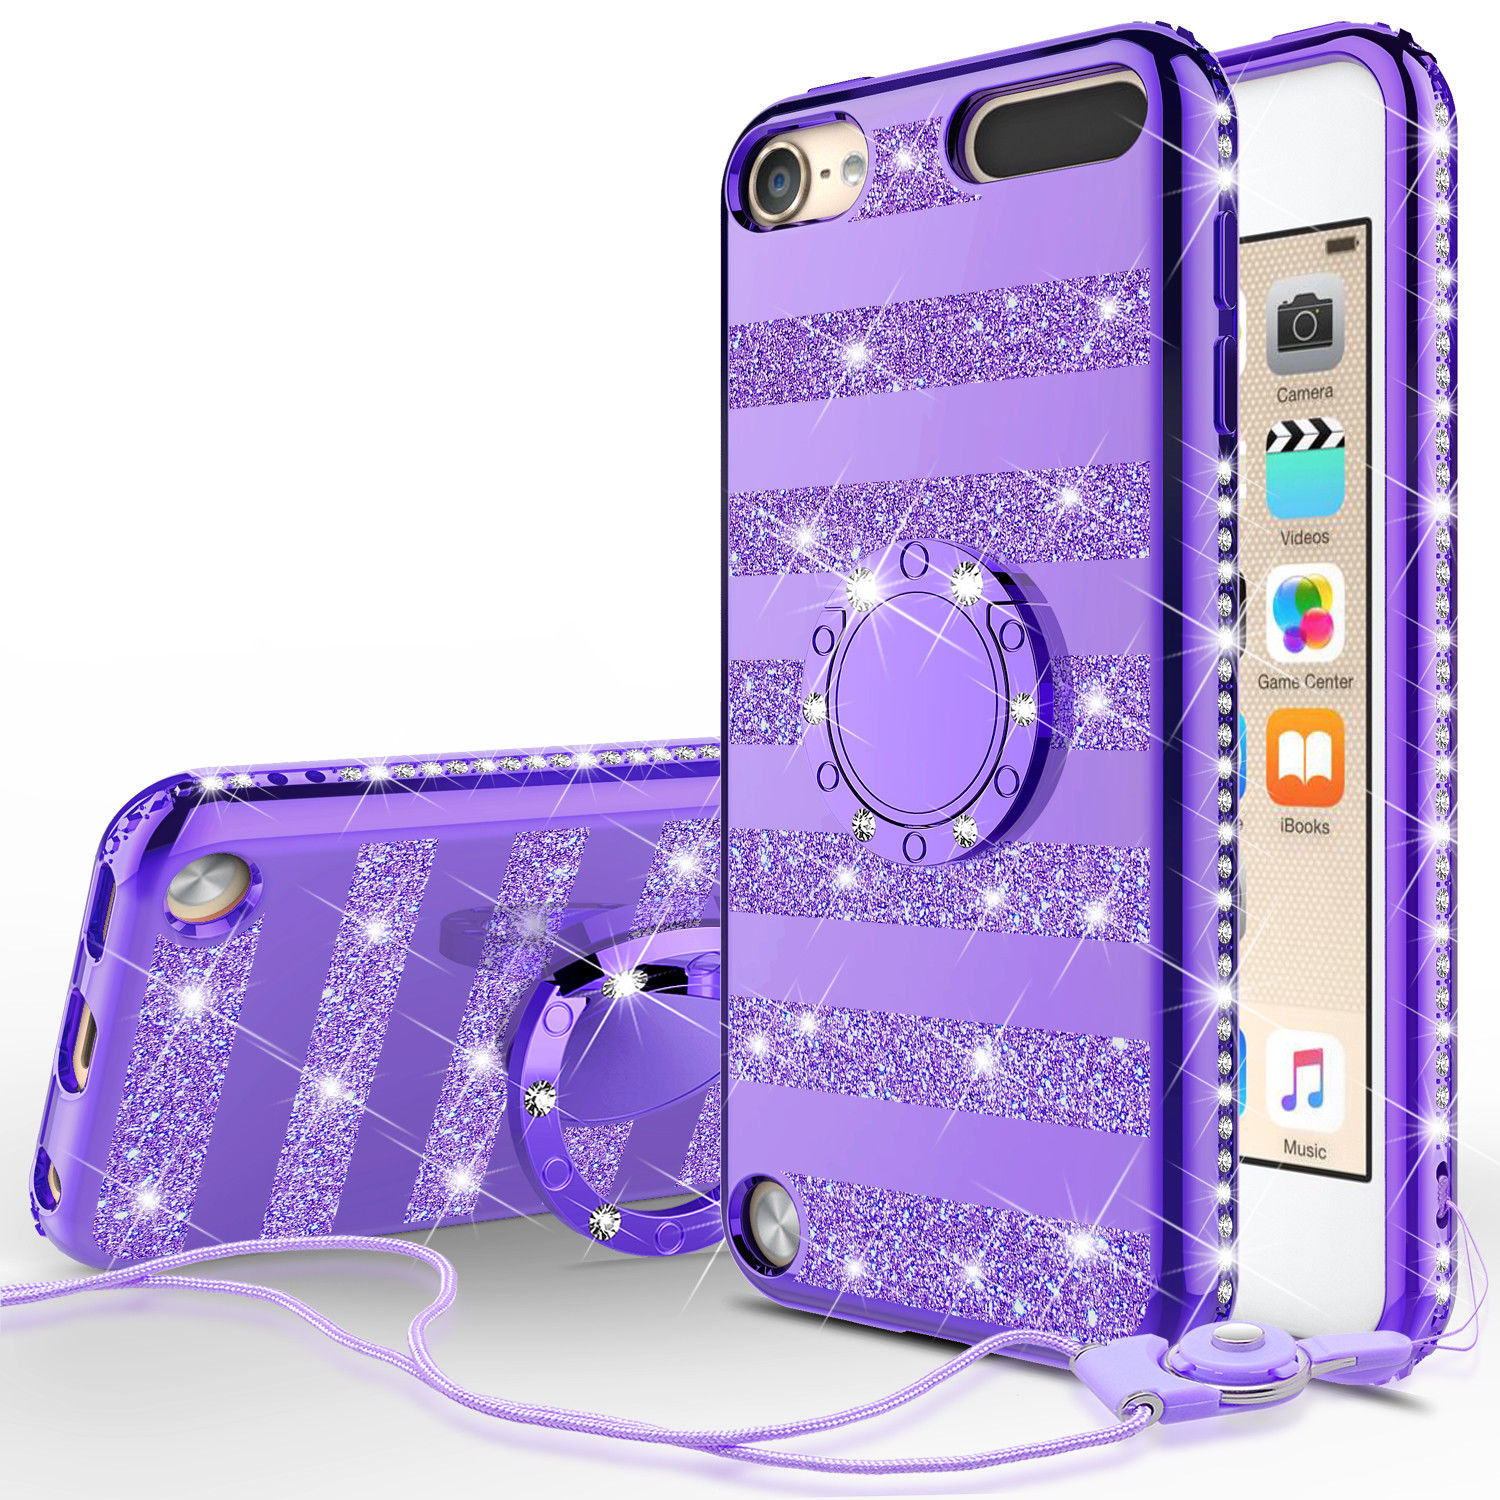 Apple iPod Touch 6 Case, iPod 6/5 Case [Tempered Glass Screen Protector],Glitter Ring Stand Bling Sparkle Diamond Case For Apple iPod Touch 5/6th Generation - Red Stripe - image 5 de 5